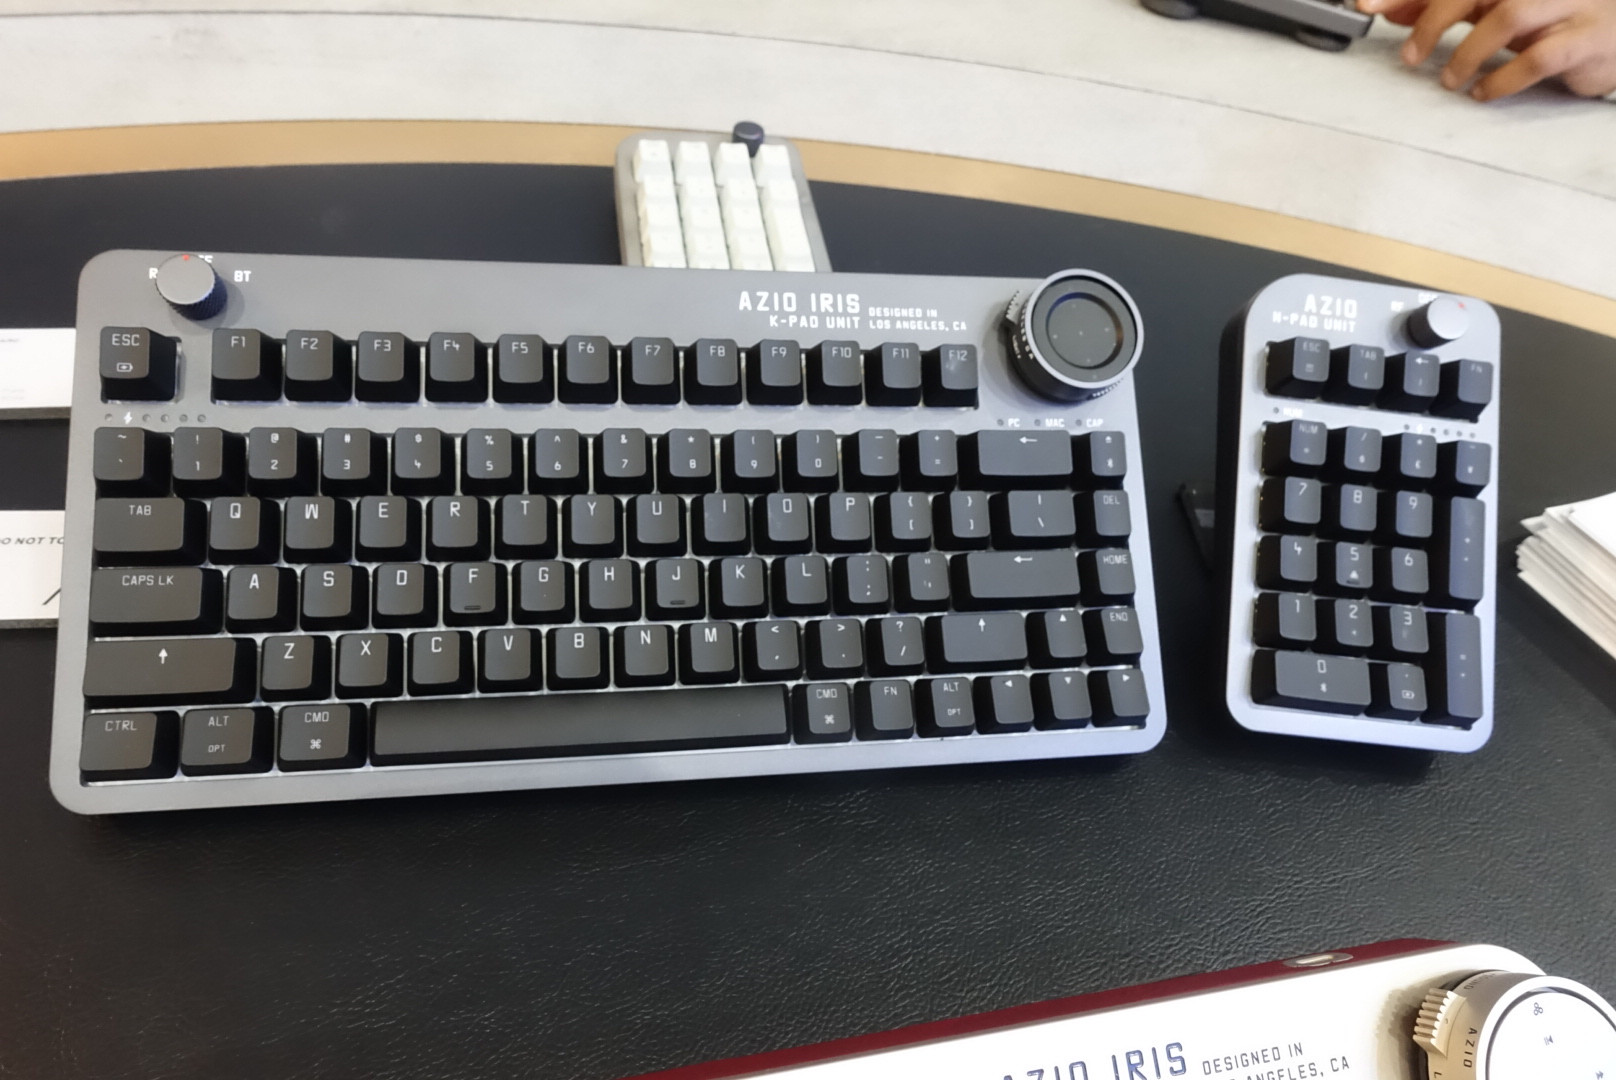 AZIO at COMPUTEX 2019: ALUMINUM Keyboard, Mouse and Number